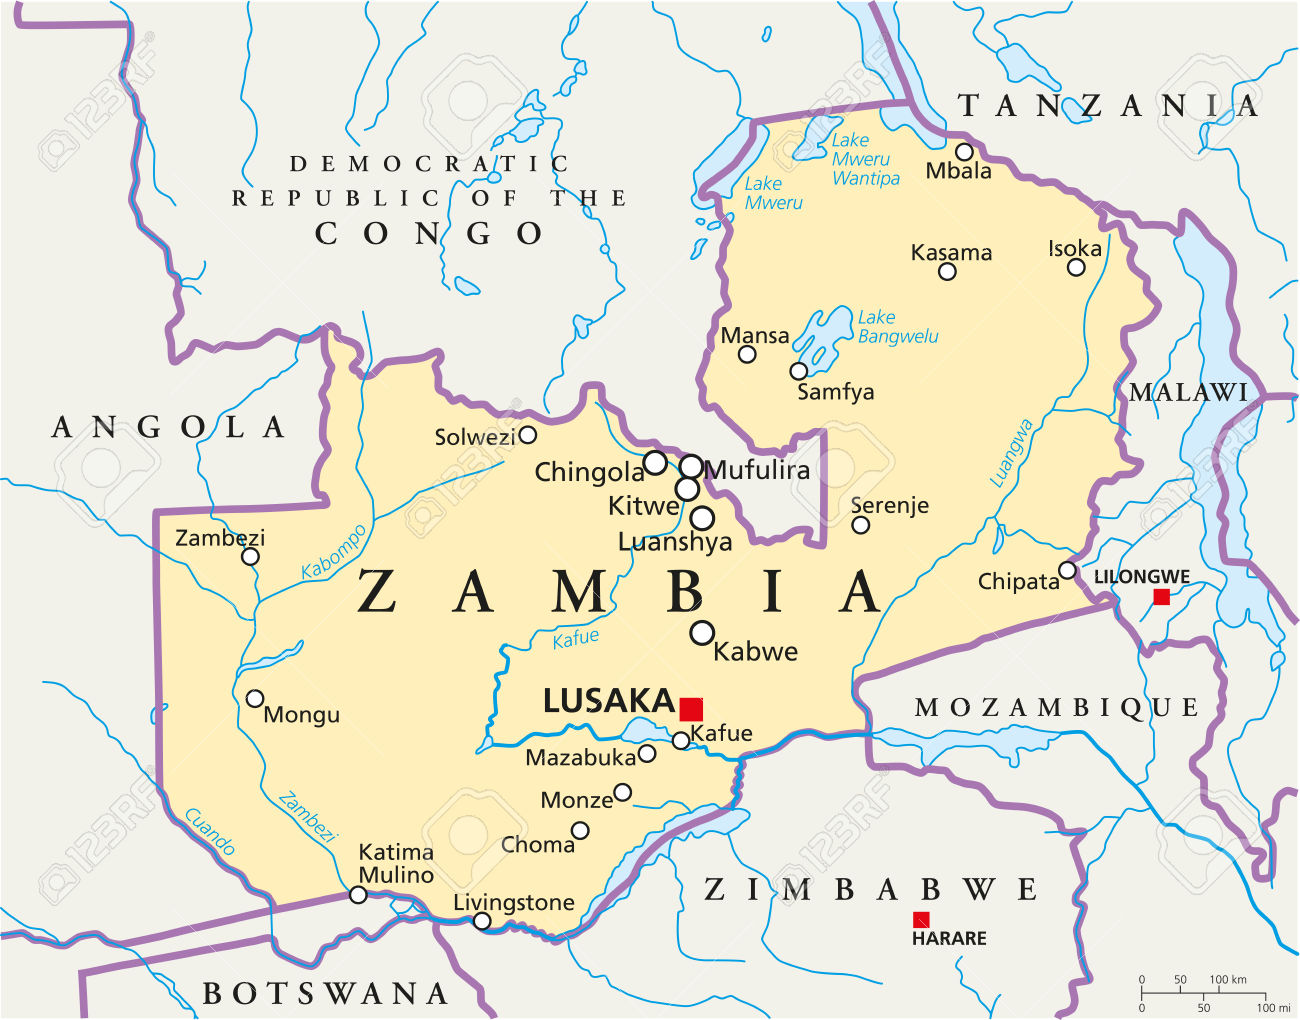 Zambia Political Map With Capital Lusaka, National Borders, Most.